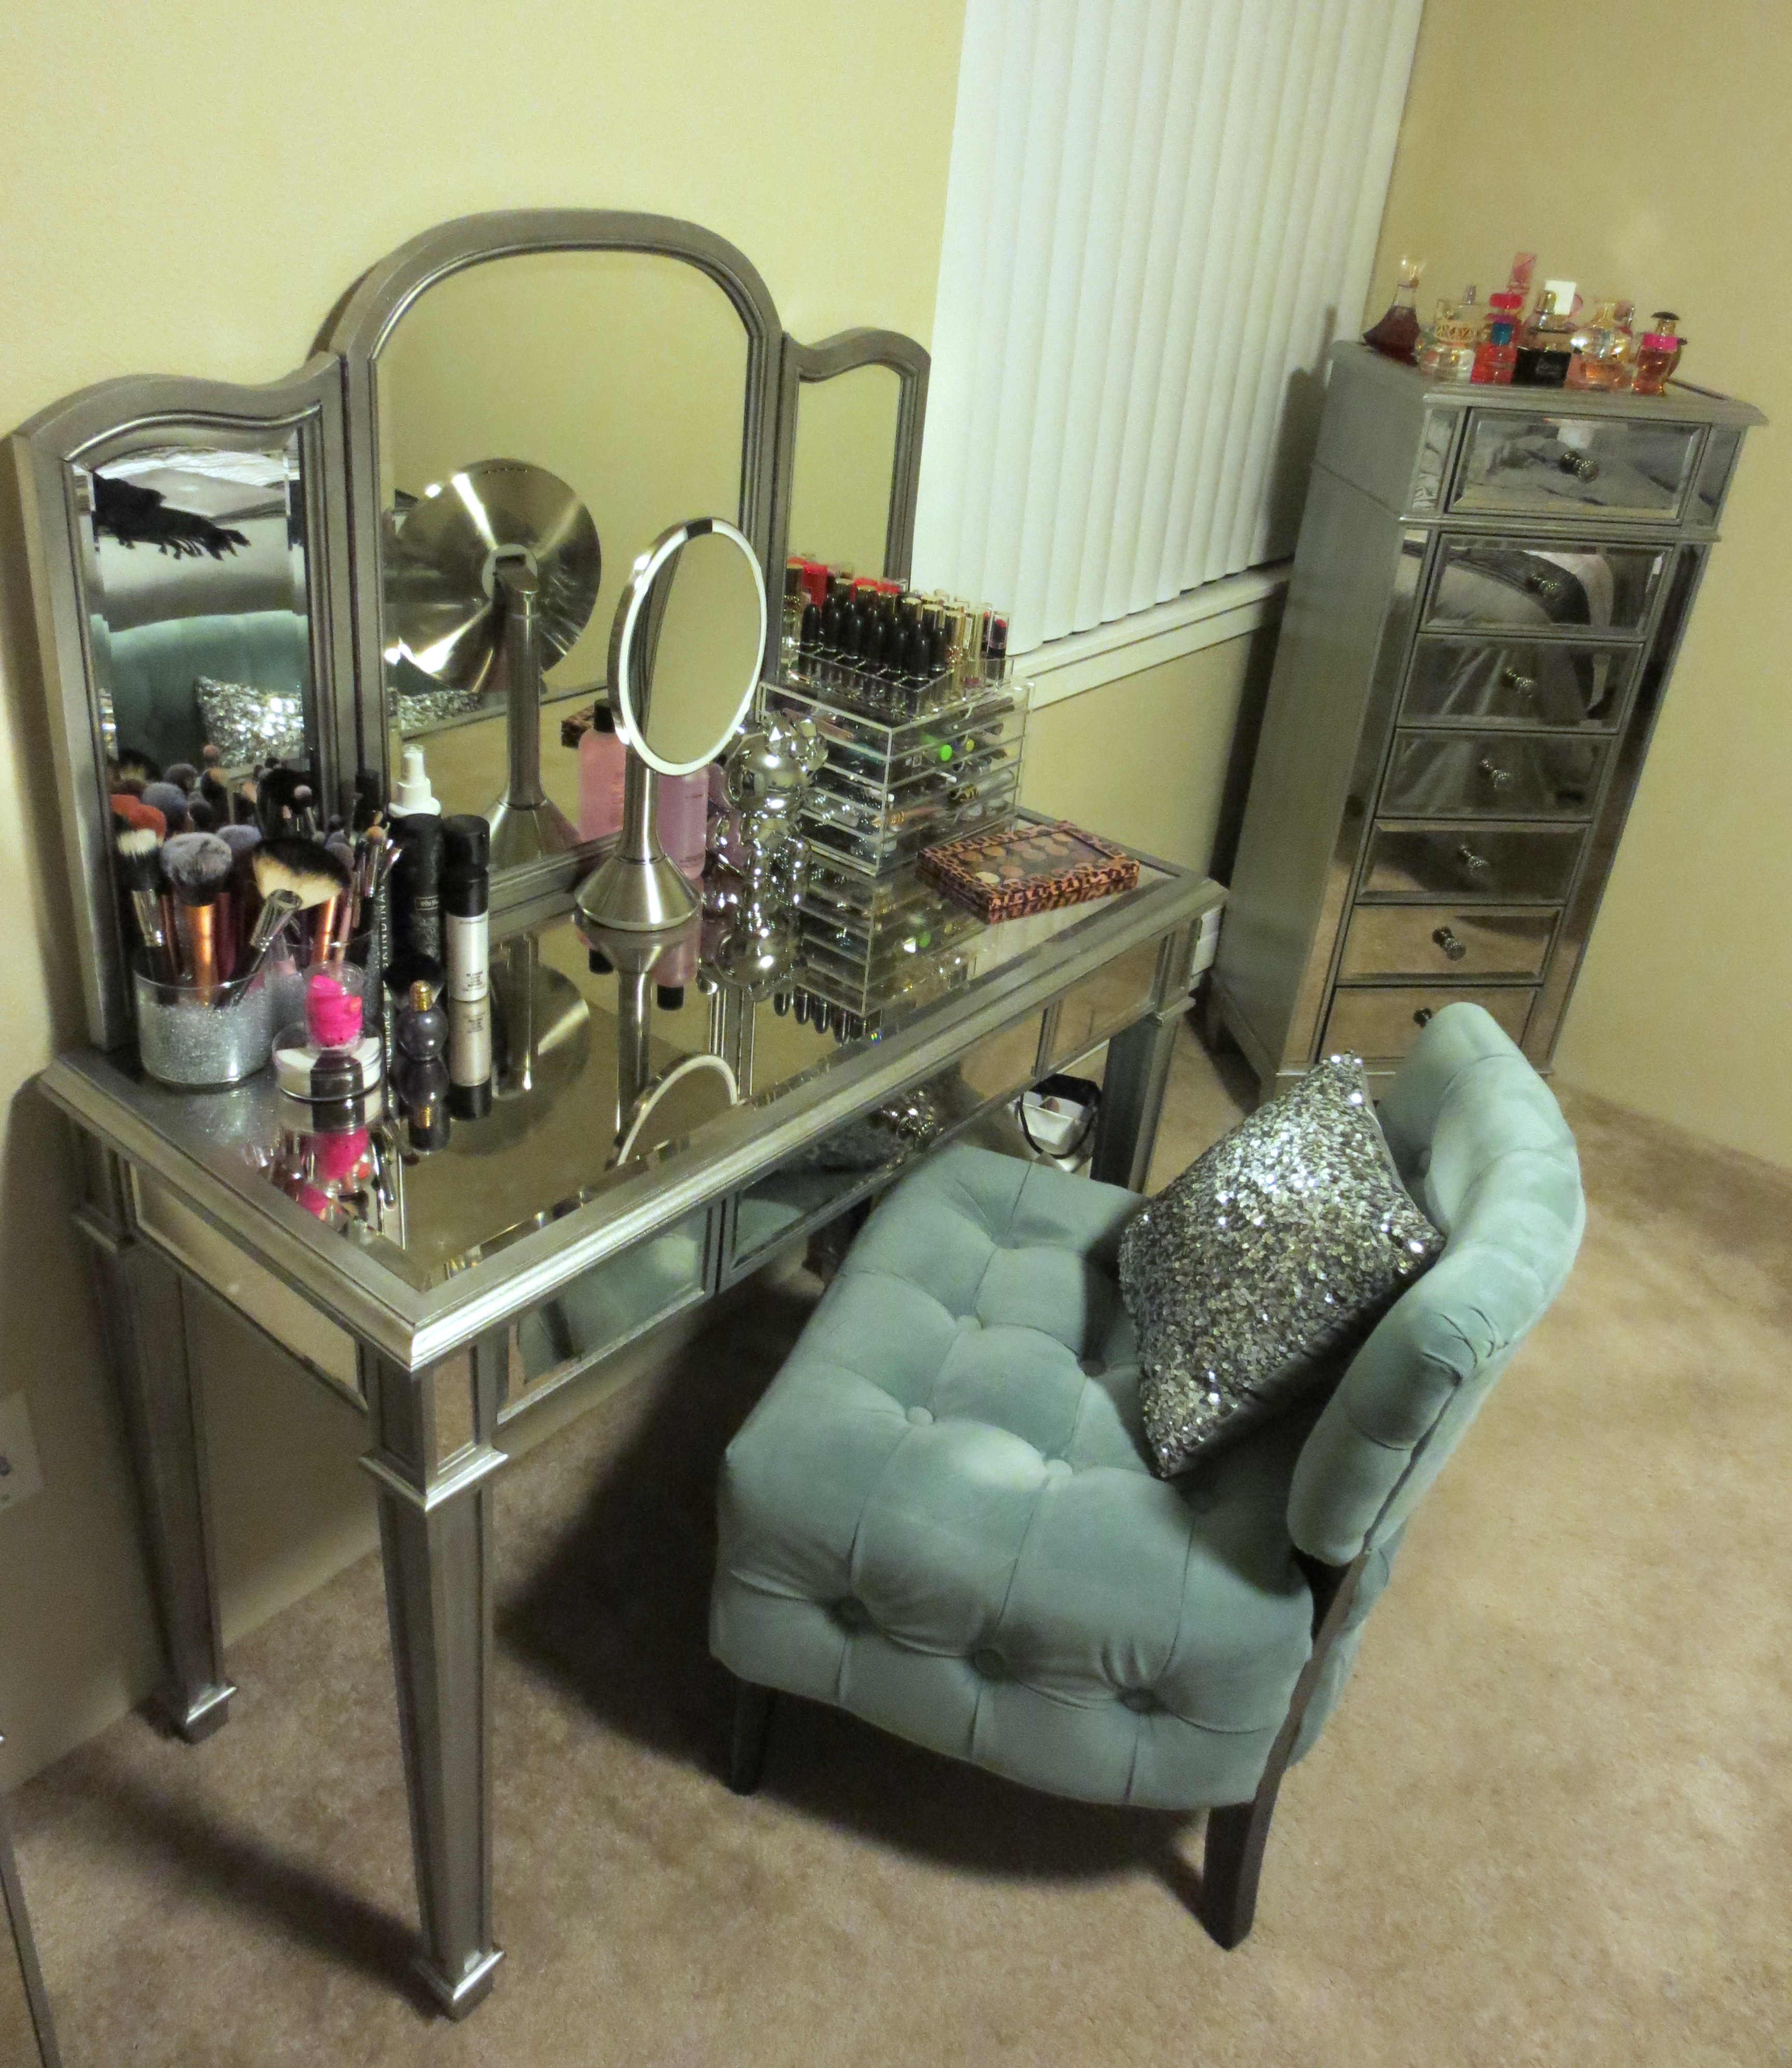 Beautiful hayworth vanity mirrored vanity and ikea vanity also ikea rug hayworth rug ideas